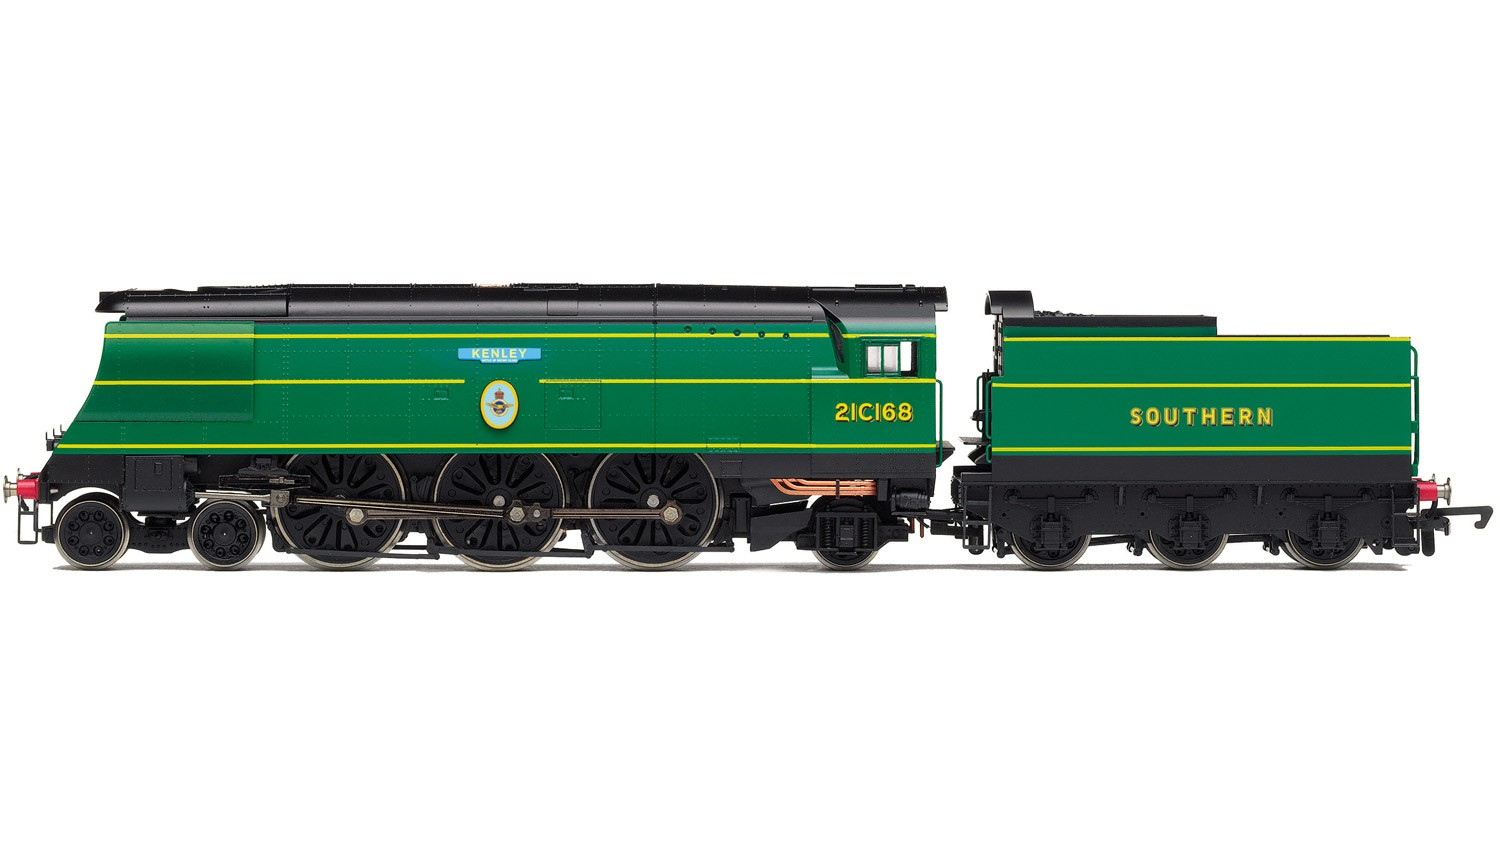 Hornby R3515 SR Battle of Britain 21C168 Kenley Image